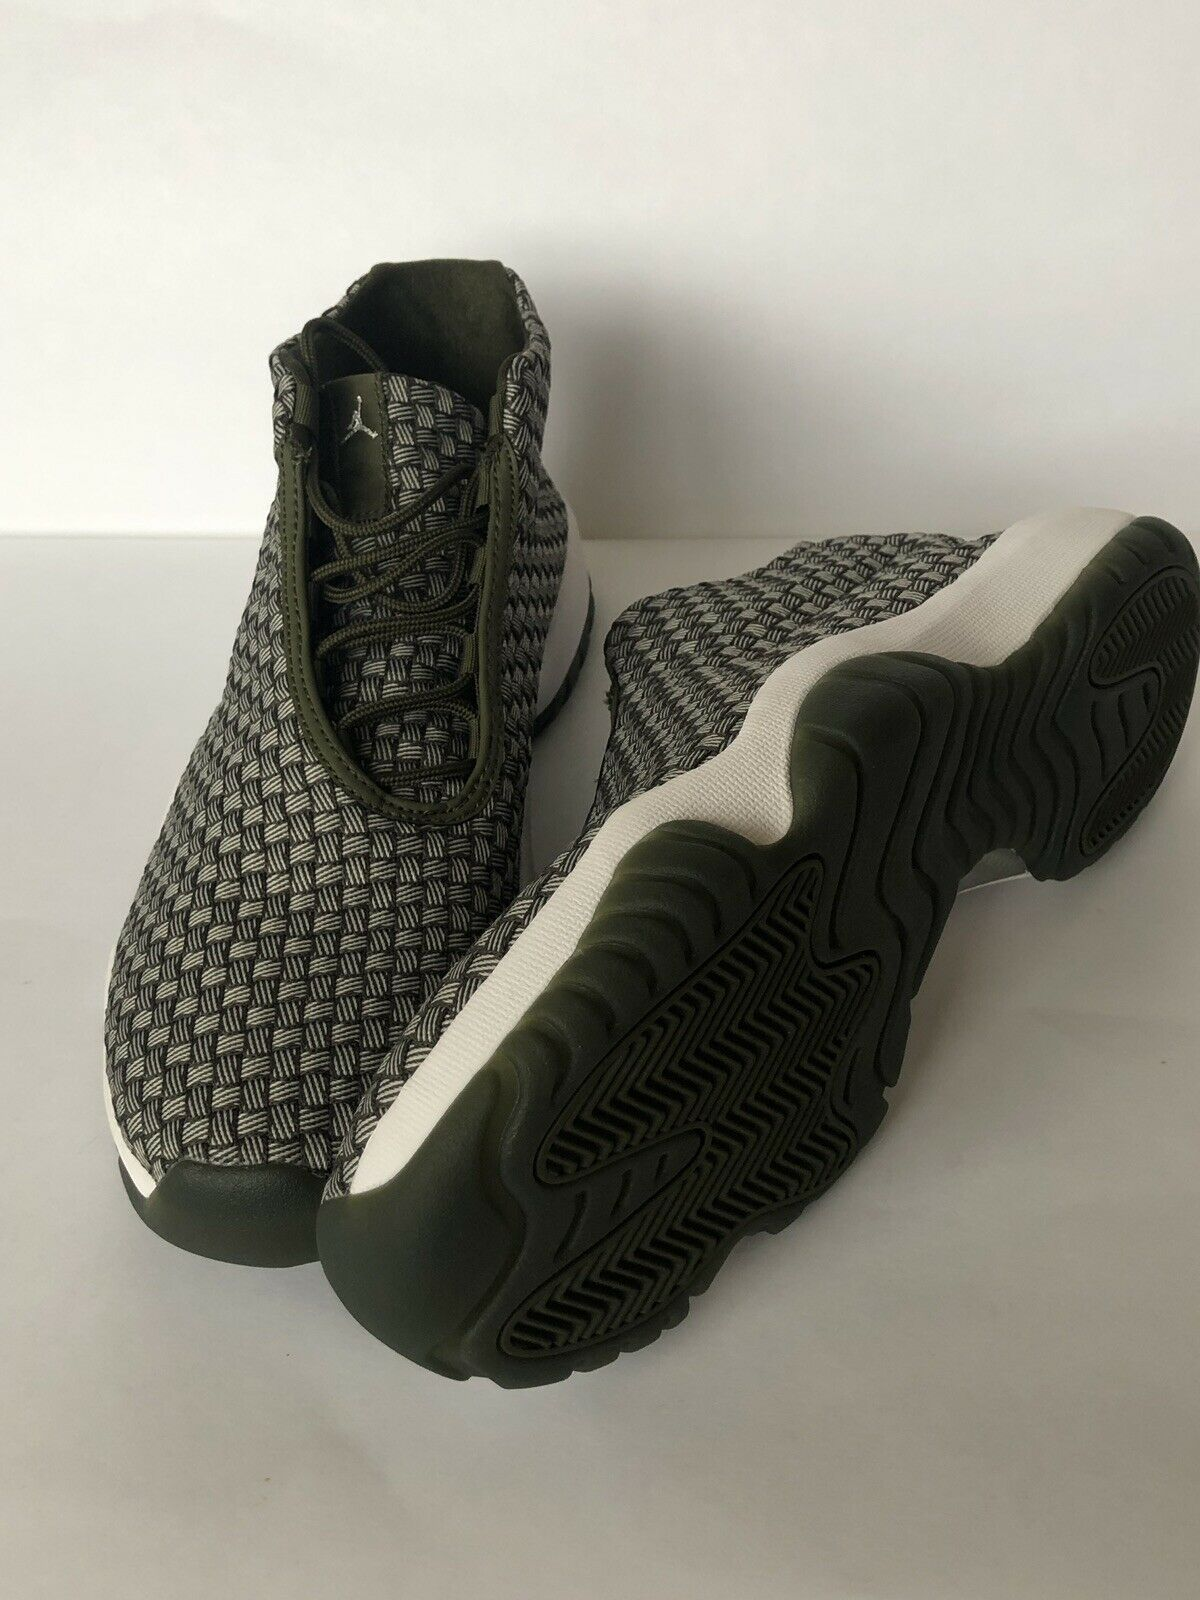 Nike Air Jordan Future Olive Canvas 656503-305 New Basketball shoes Size 10.5